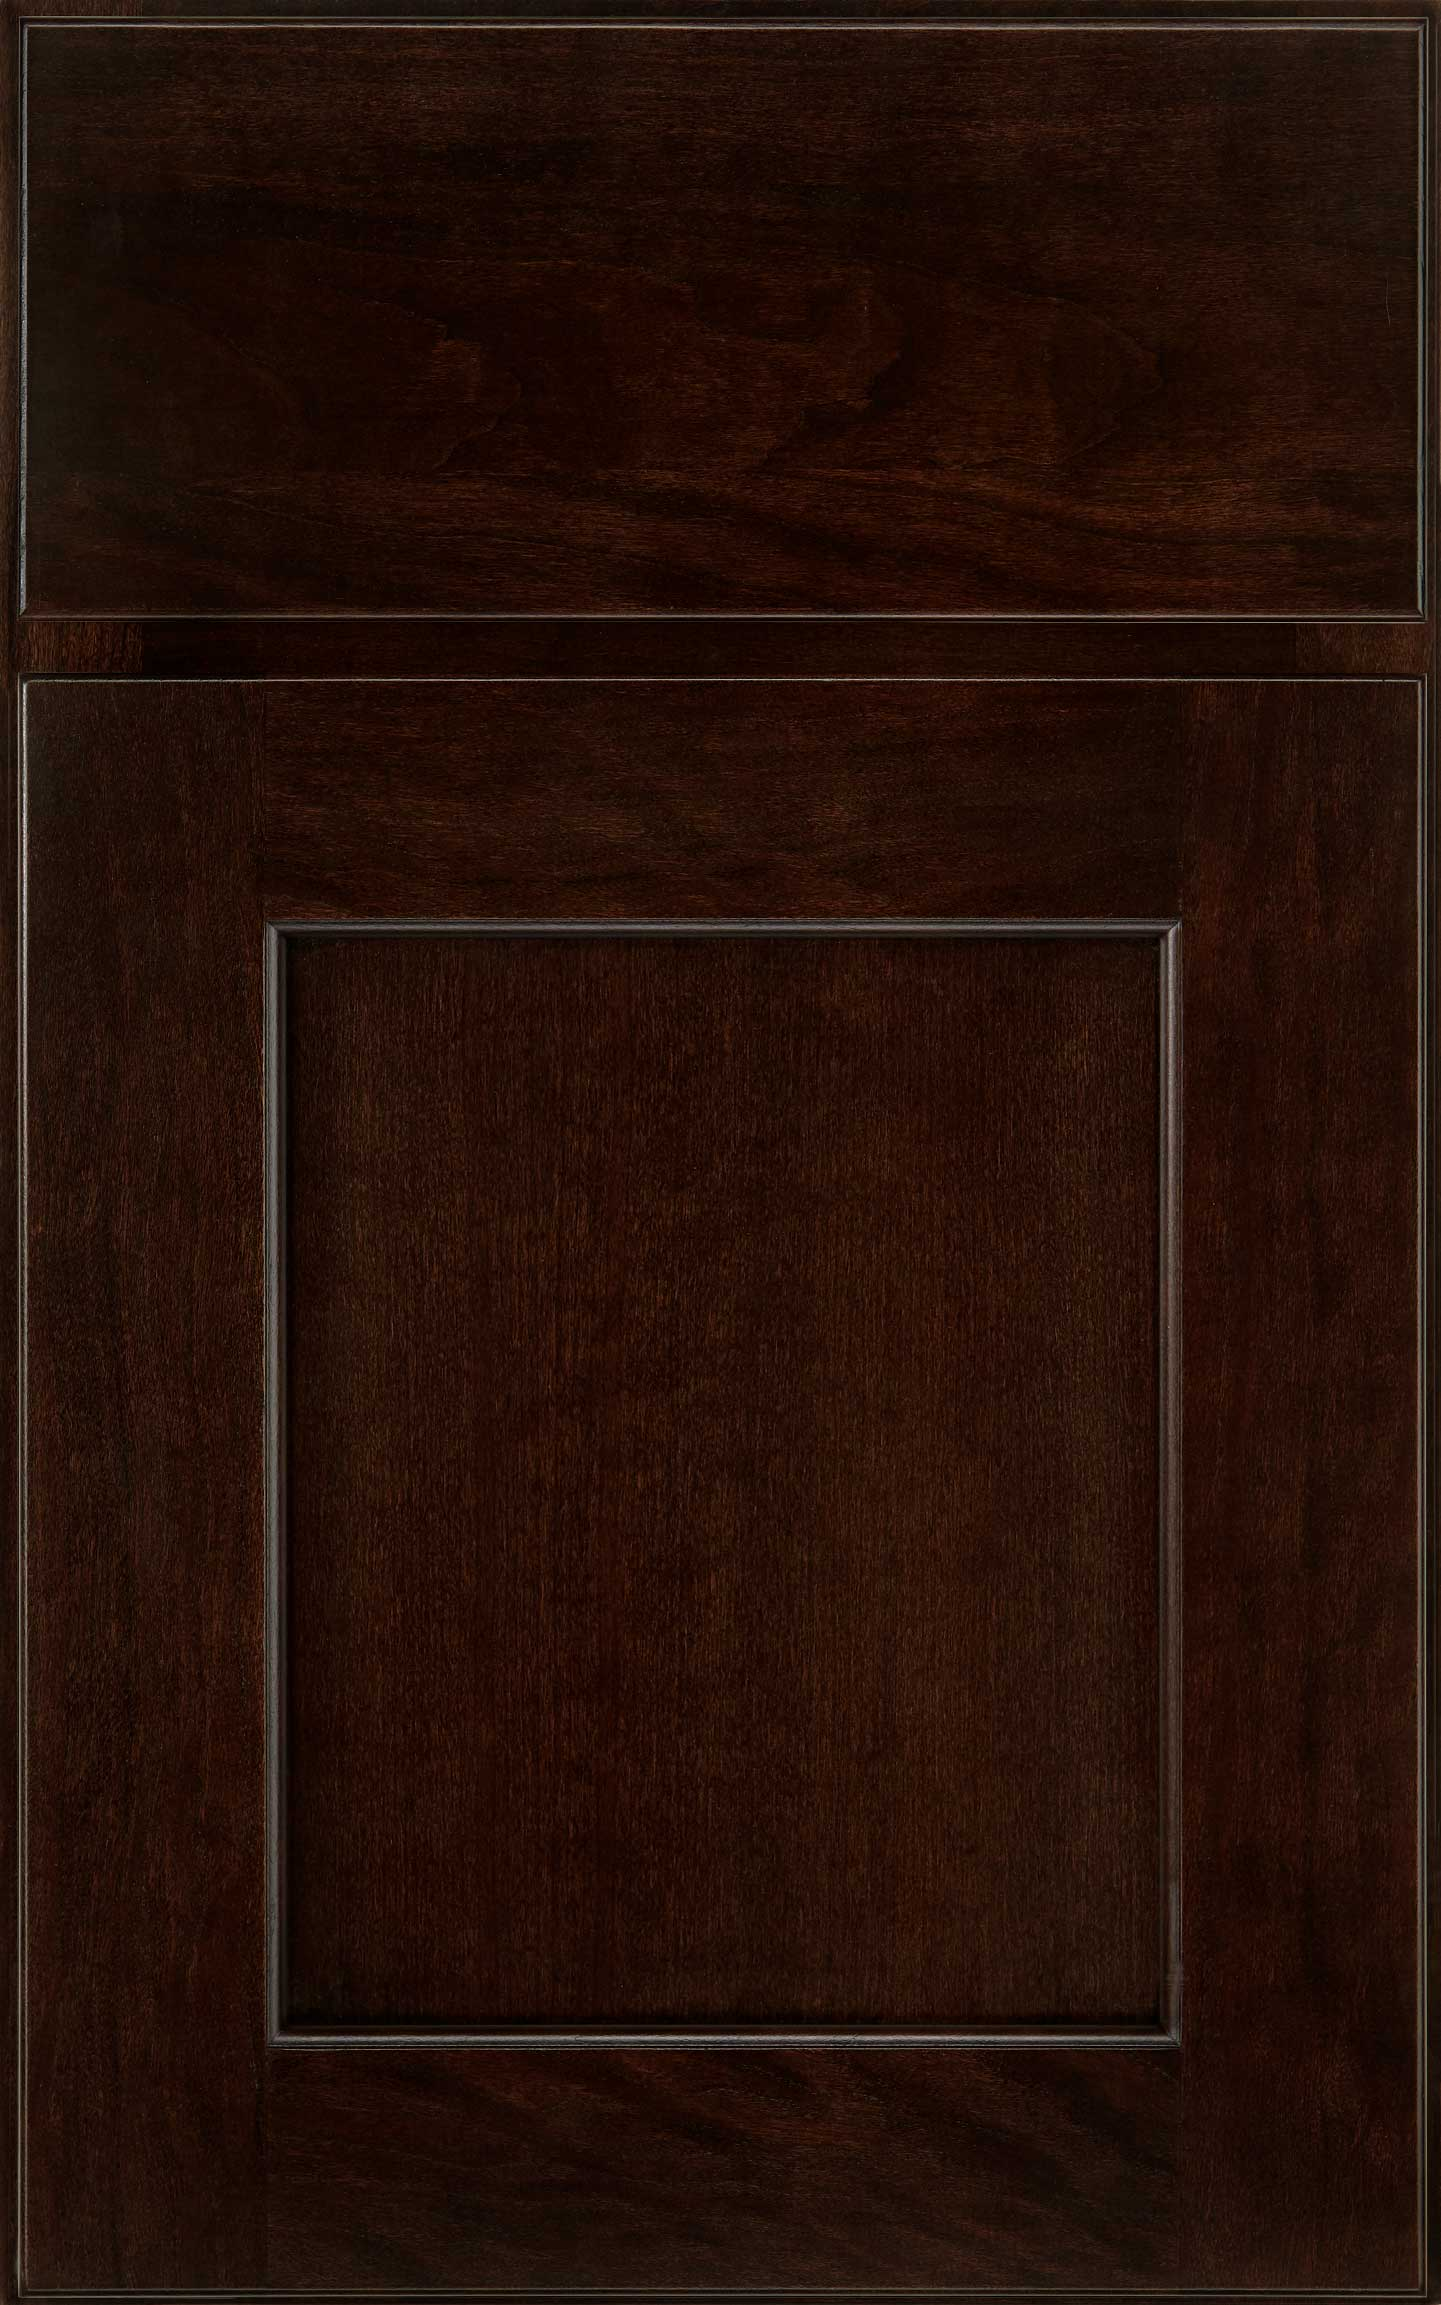 Park Place cabinet door in dark